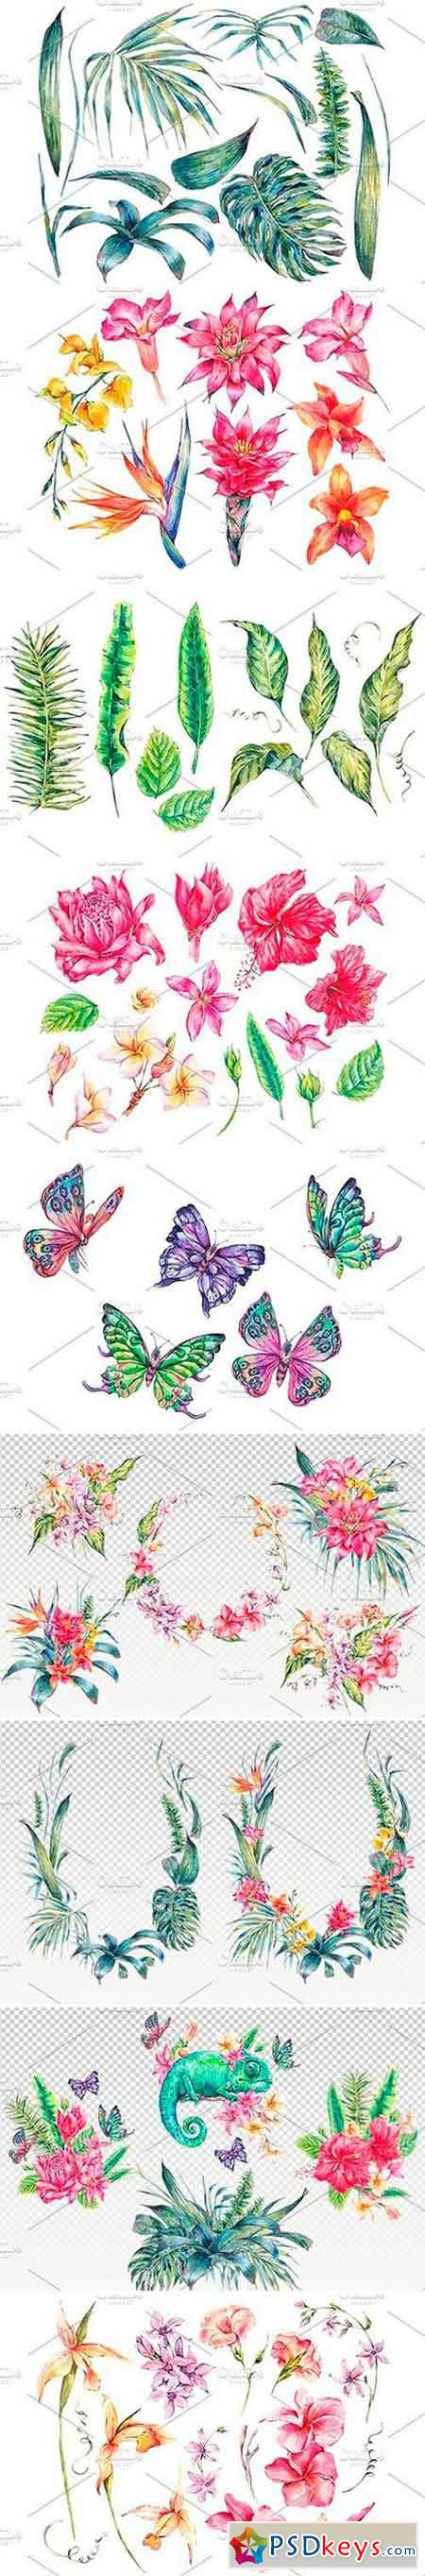 Summer Time, Tropical Flowers Collection - watercolor clipart bundle